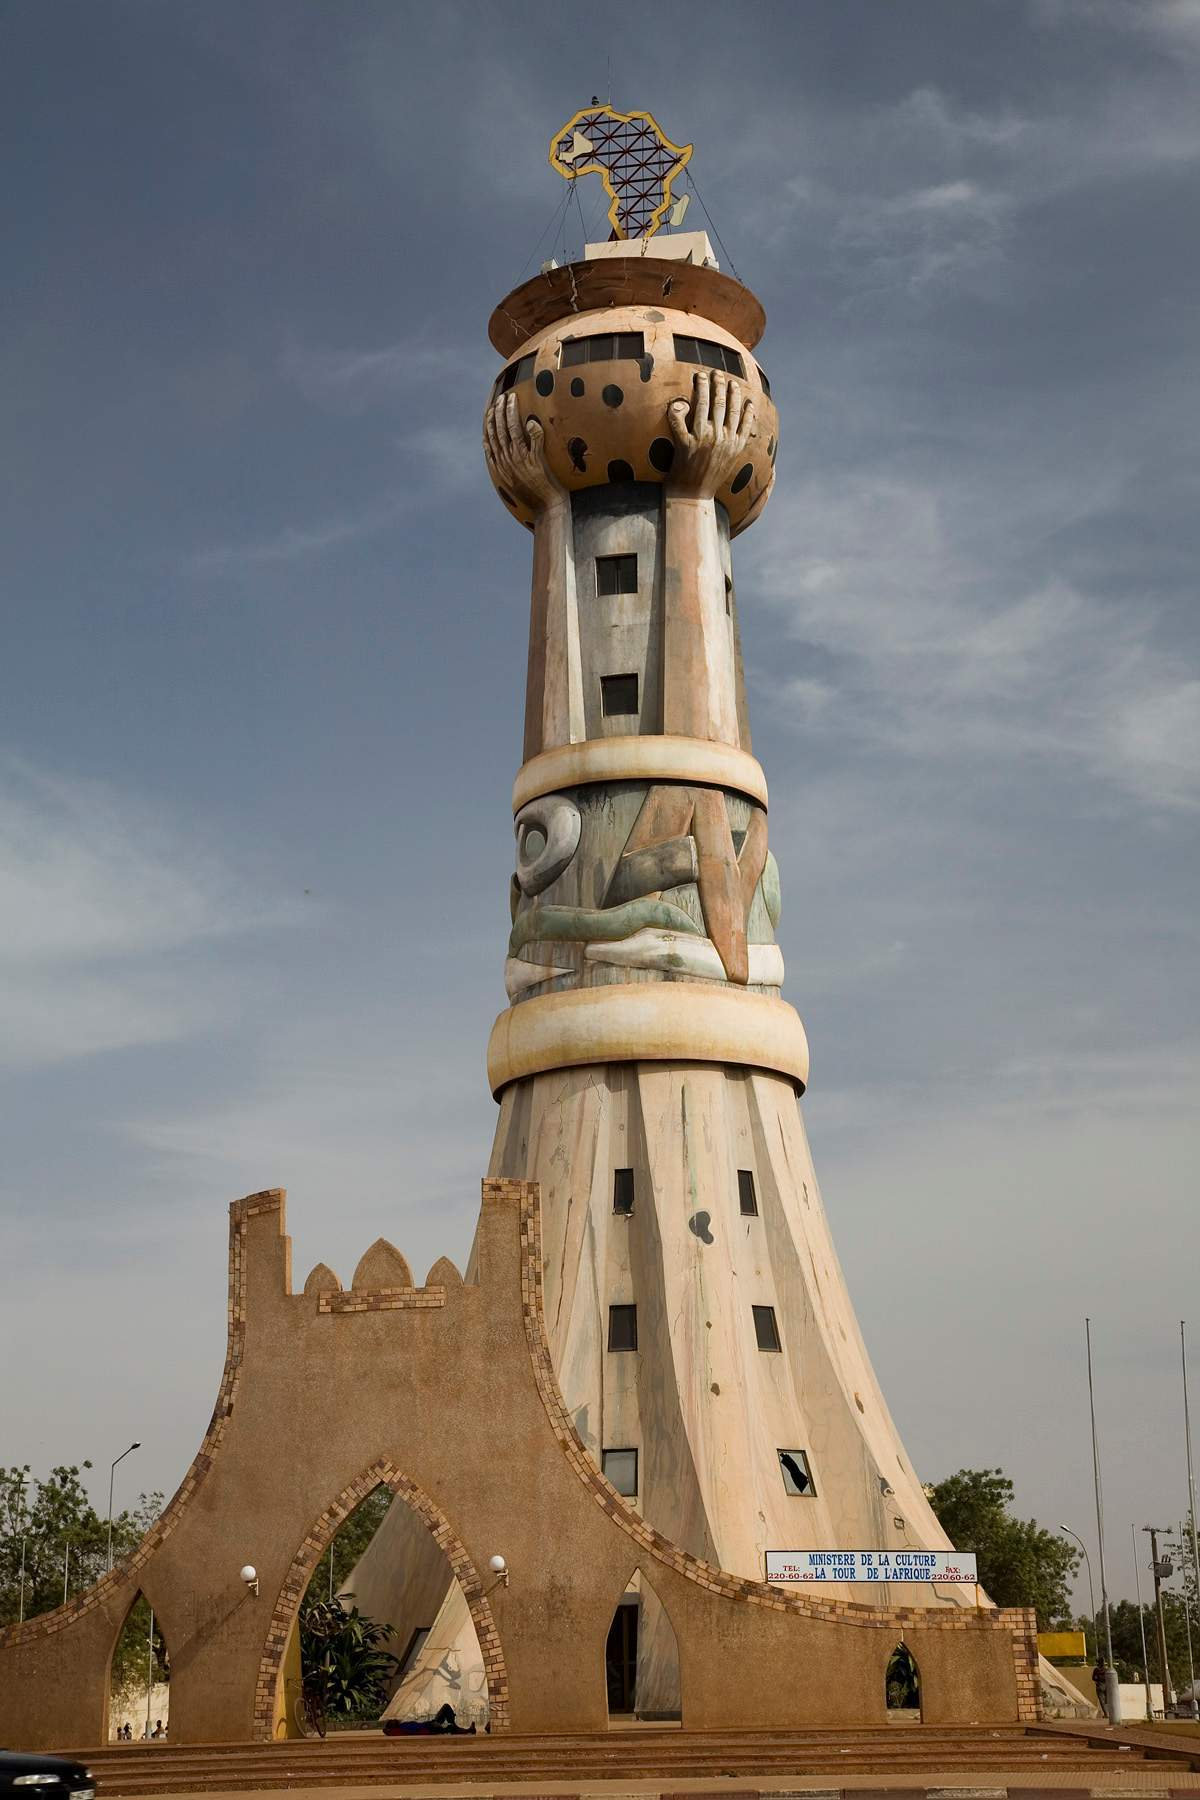 african architecture monument africa mali organization unity perspectives sightlines bamako urbanism west cameroon tower archdaily monuments famous tour modern museum